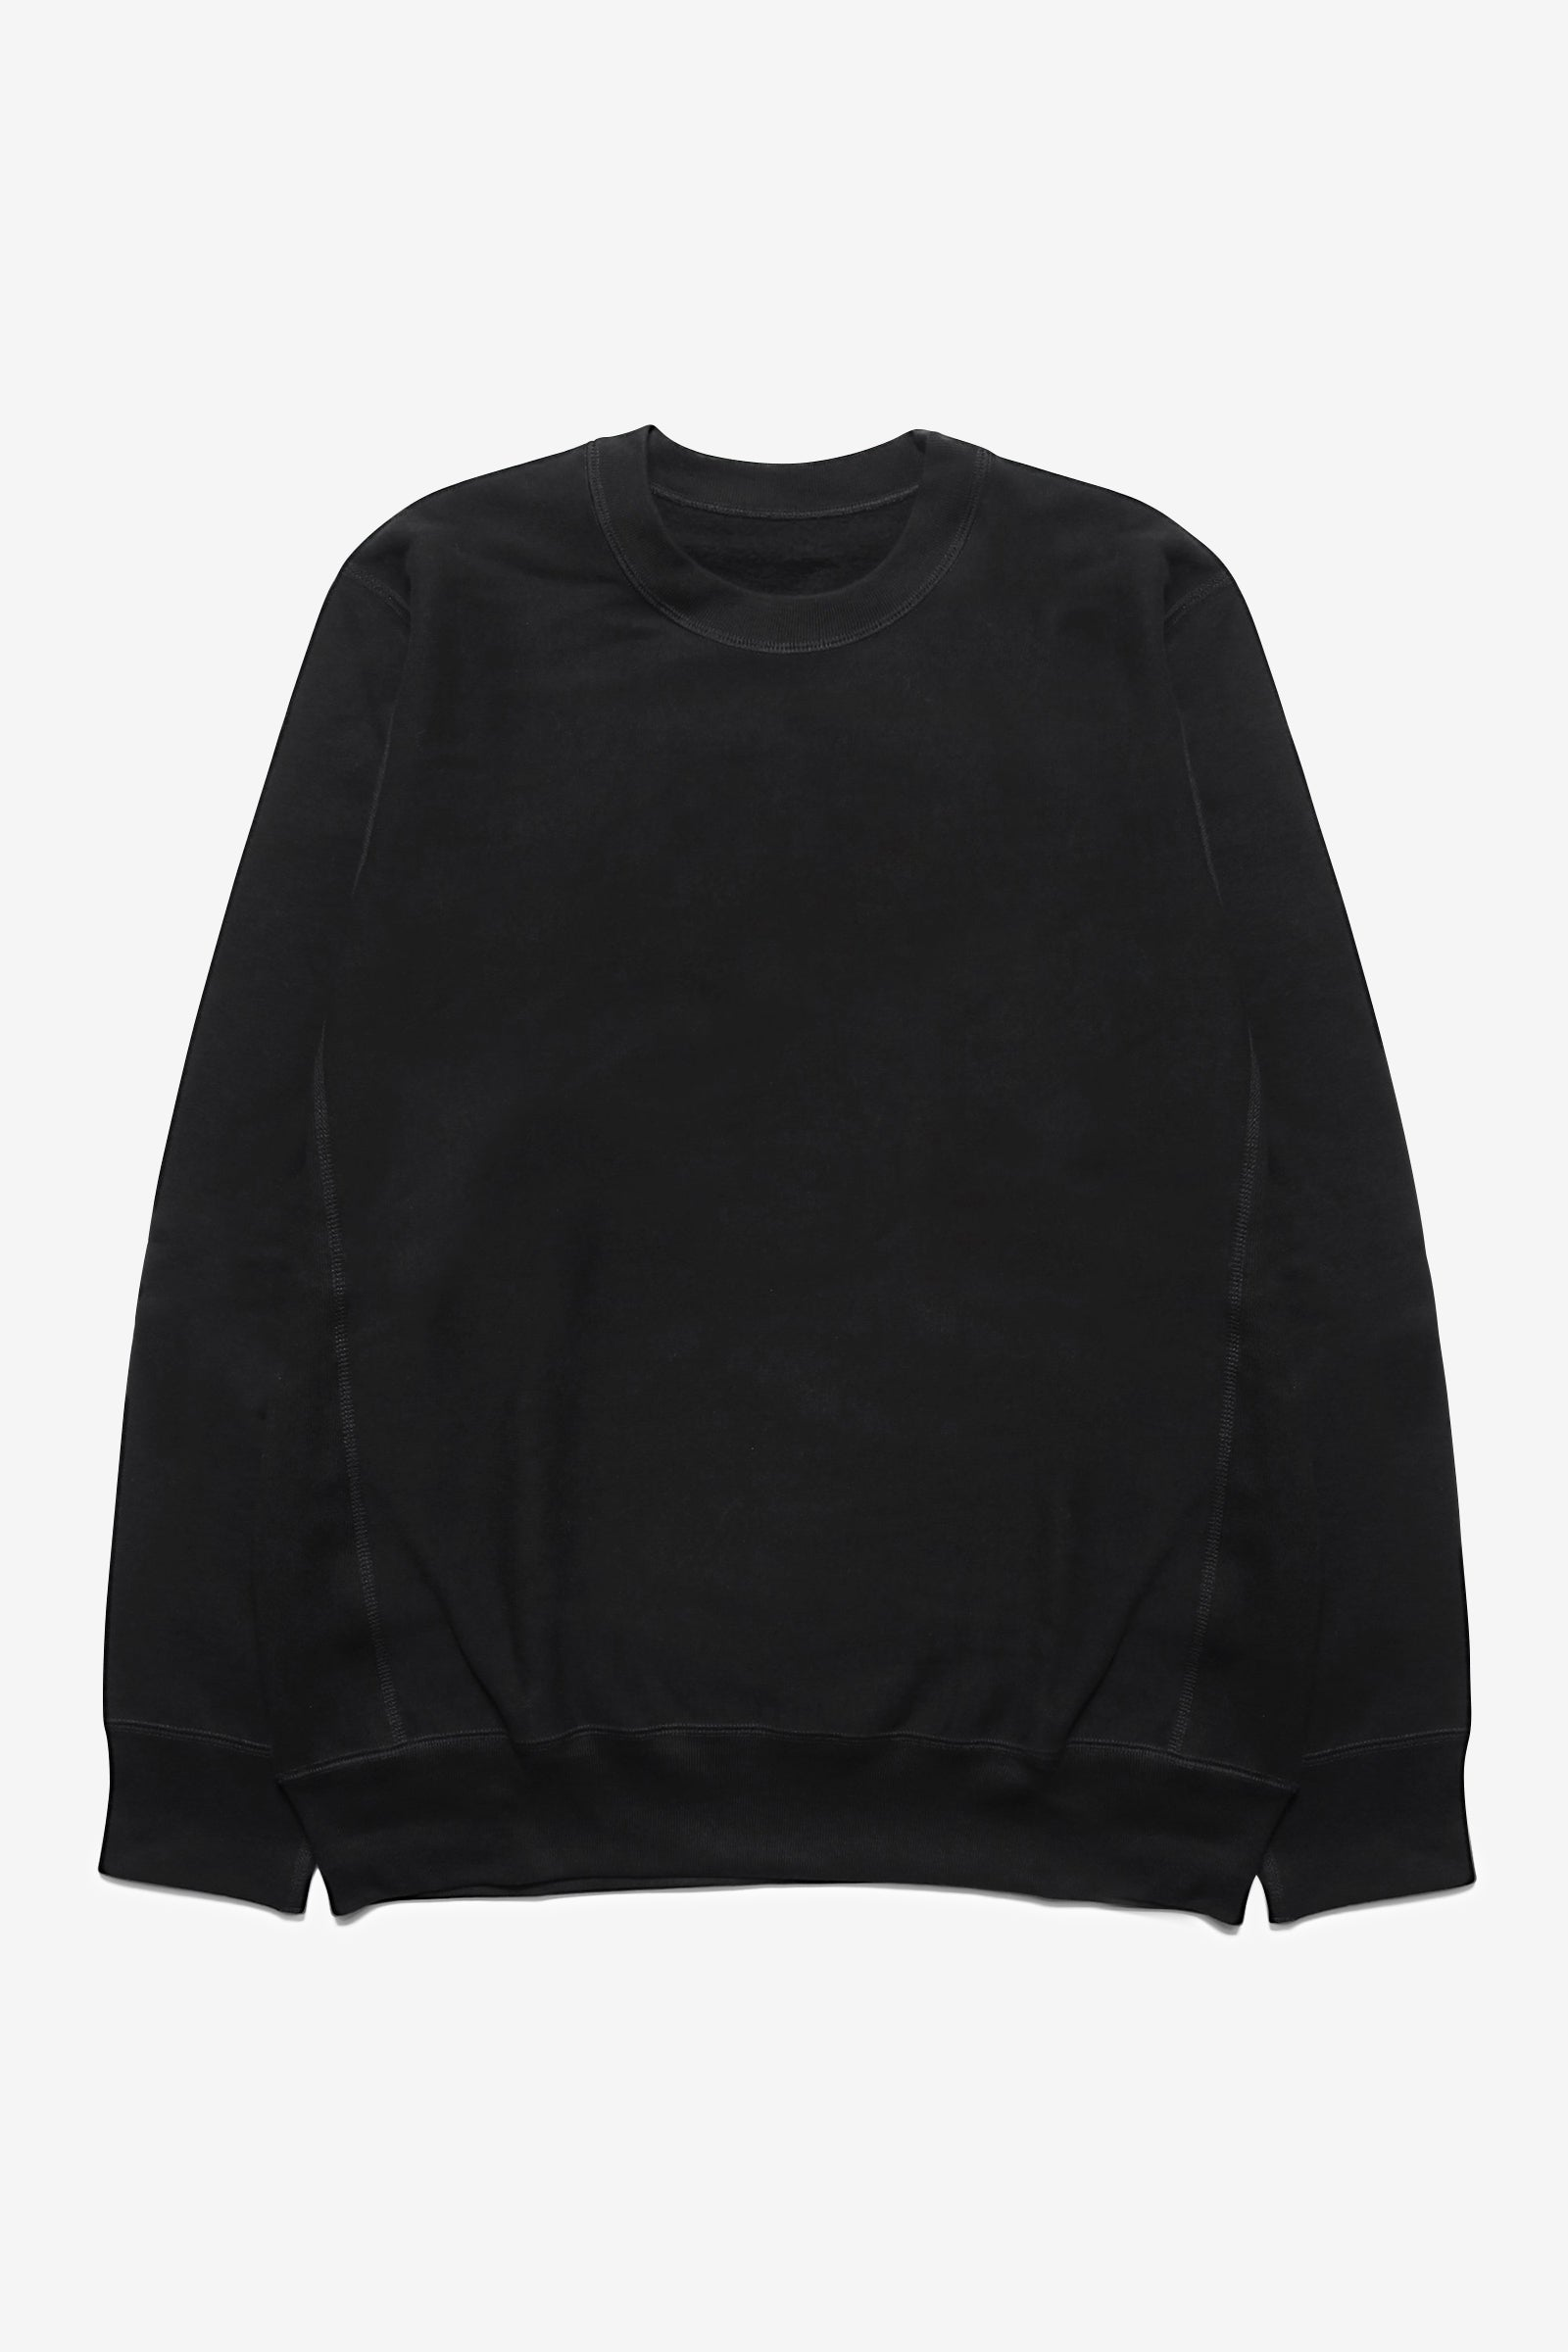 Blacksmith - Cross-Grain Staple Crewneck - Black